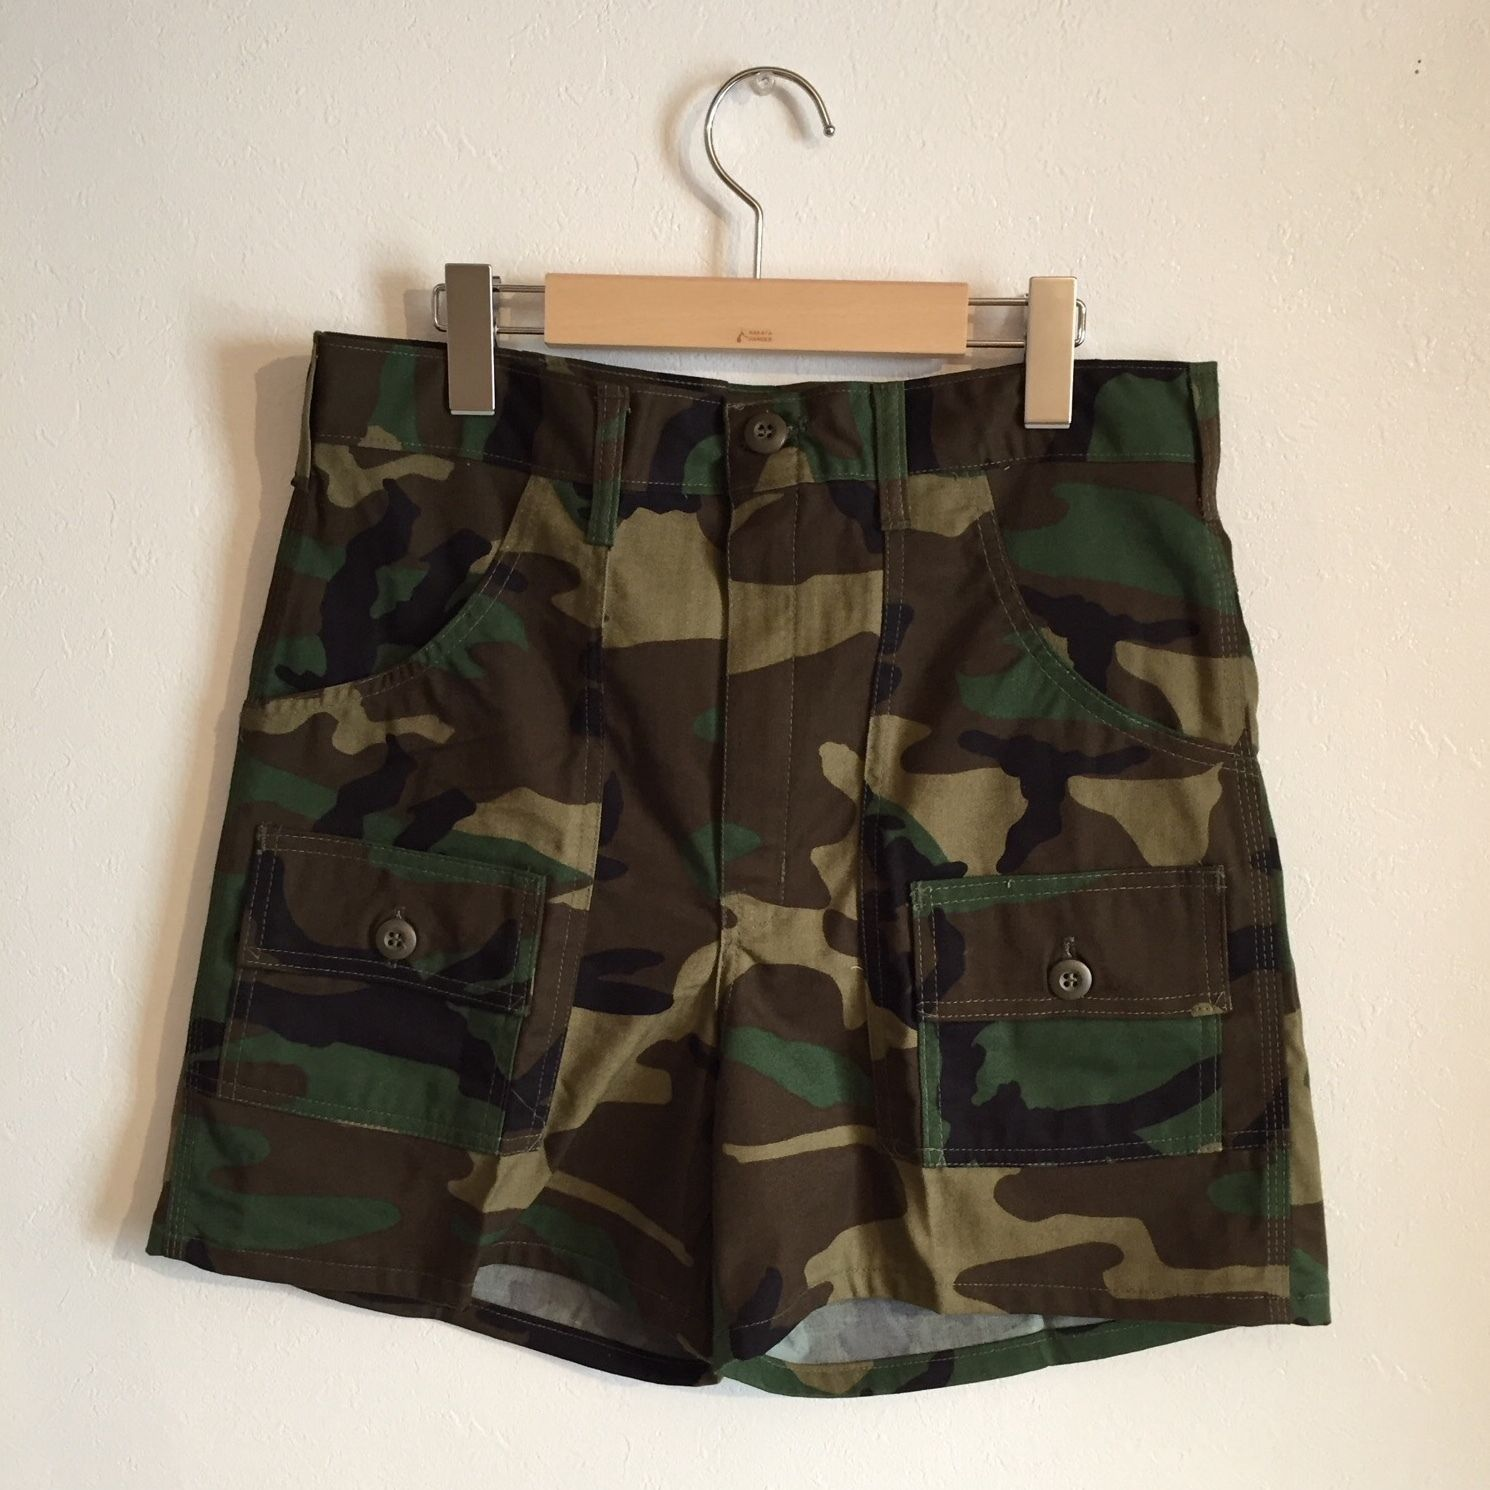 【GUNG HO】CAMO BUSH SHORTS